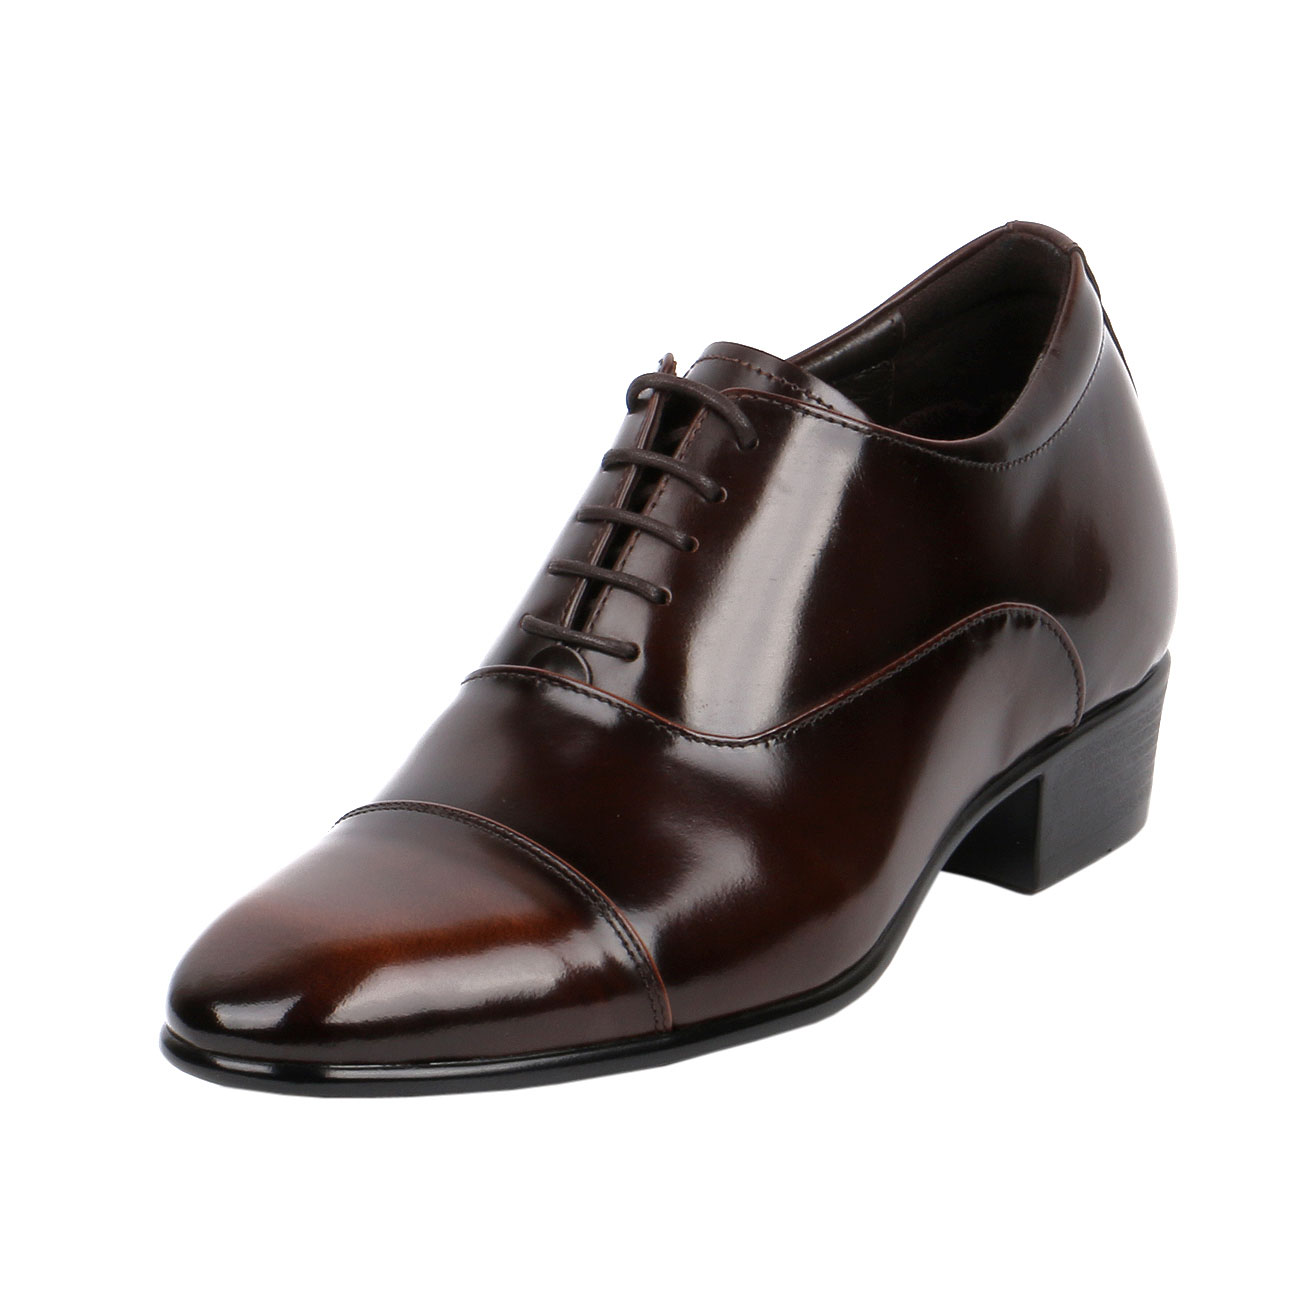 Classic A Cap-Toe Oxford Shoe With Two Tone Brown Semi Glossy  Formal, Elegant & Dressy - Eindrof-1